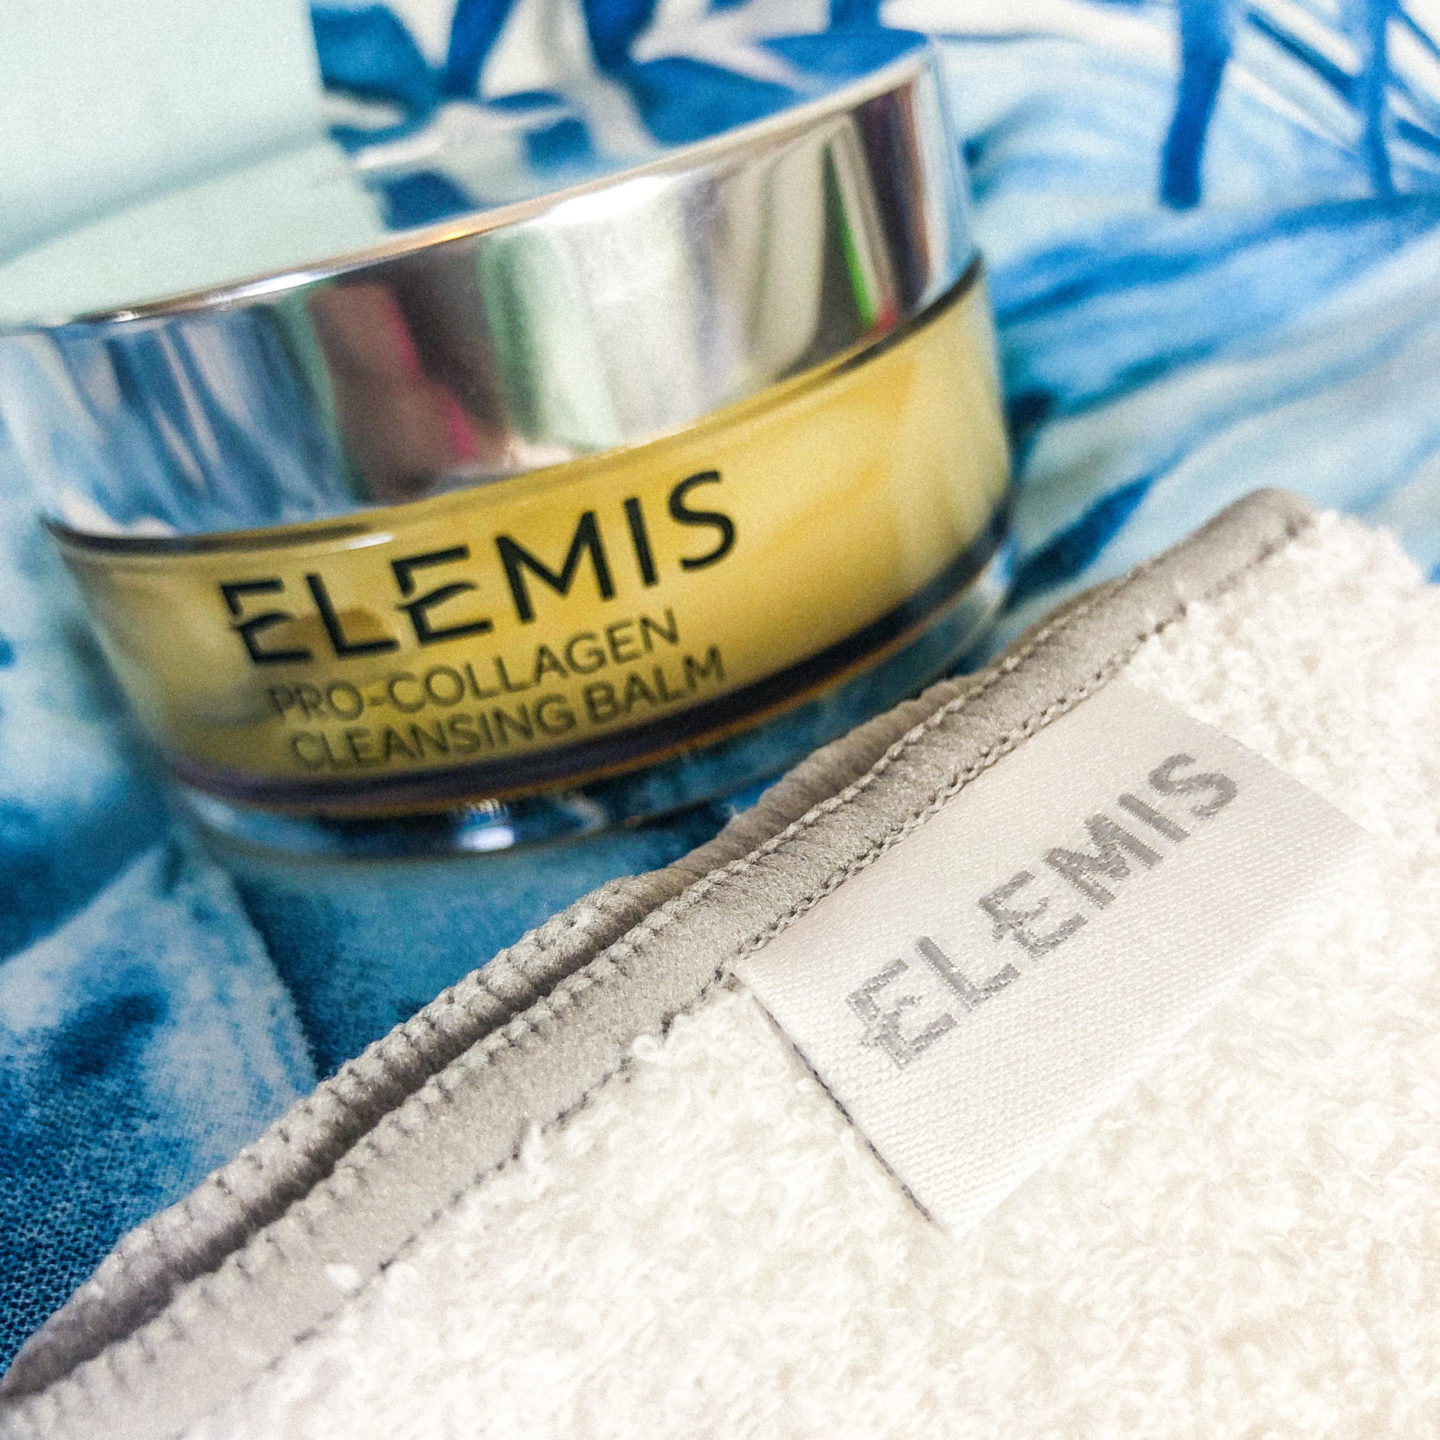 Elemis Pro-Collagen Cleansing Balm - Rachel Nicole UK Blogger